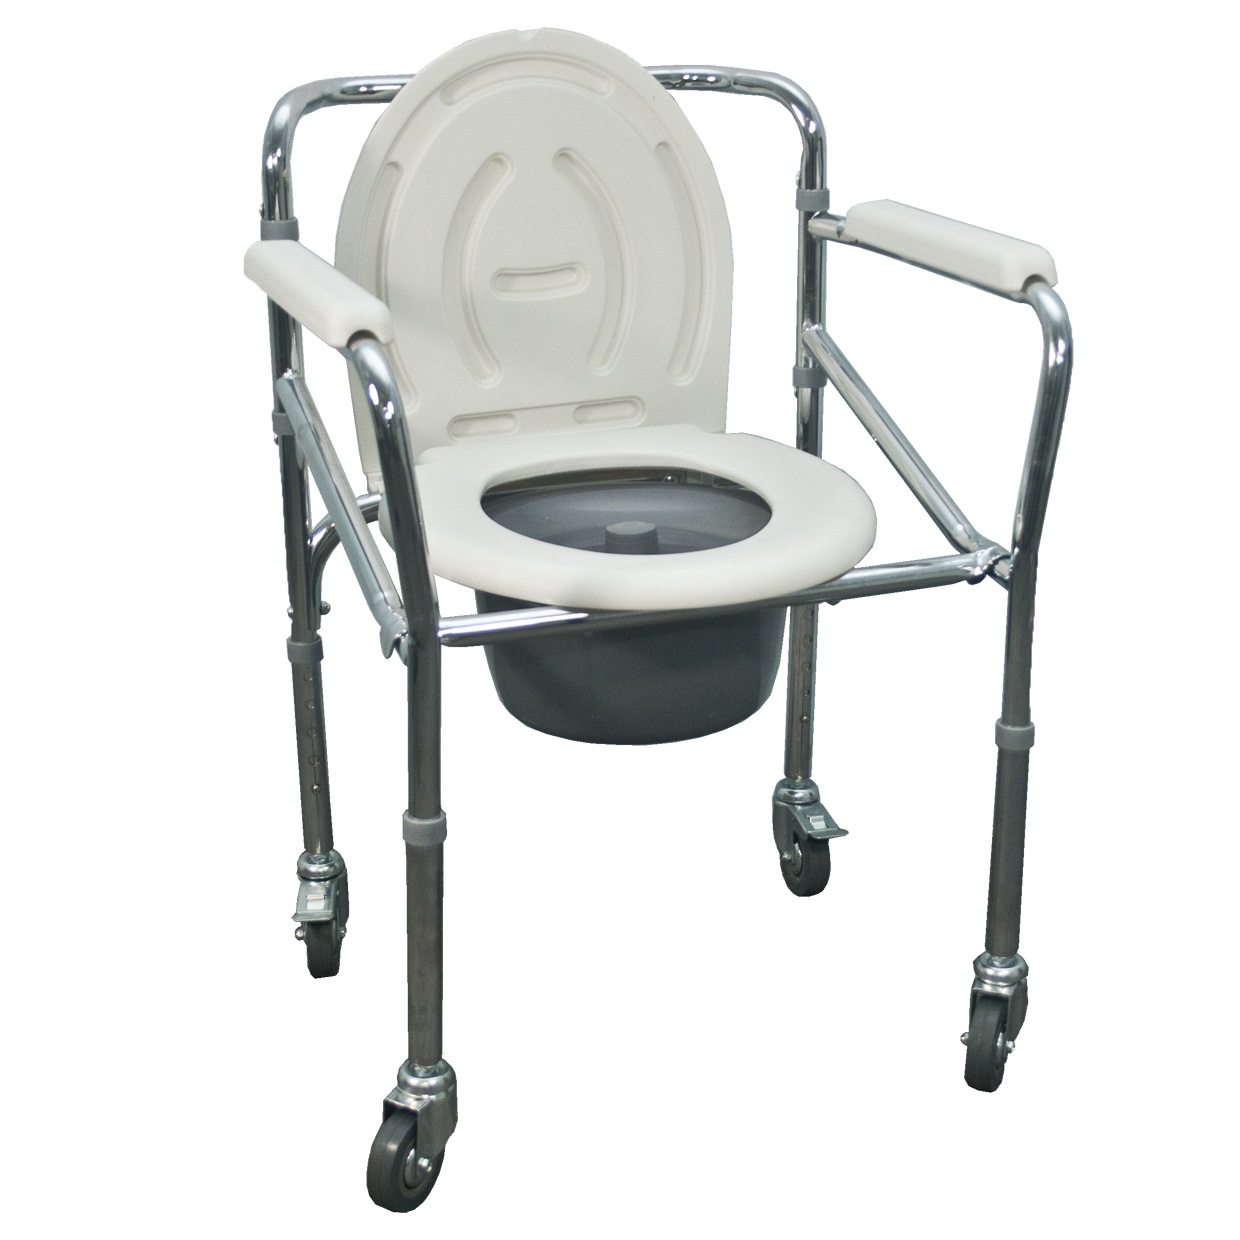 Assure Chrome Steel Commode Chair With 4 Lock Ar-0221